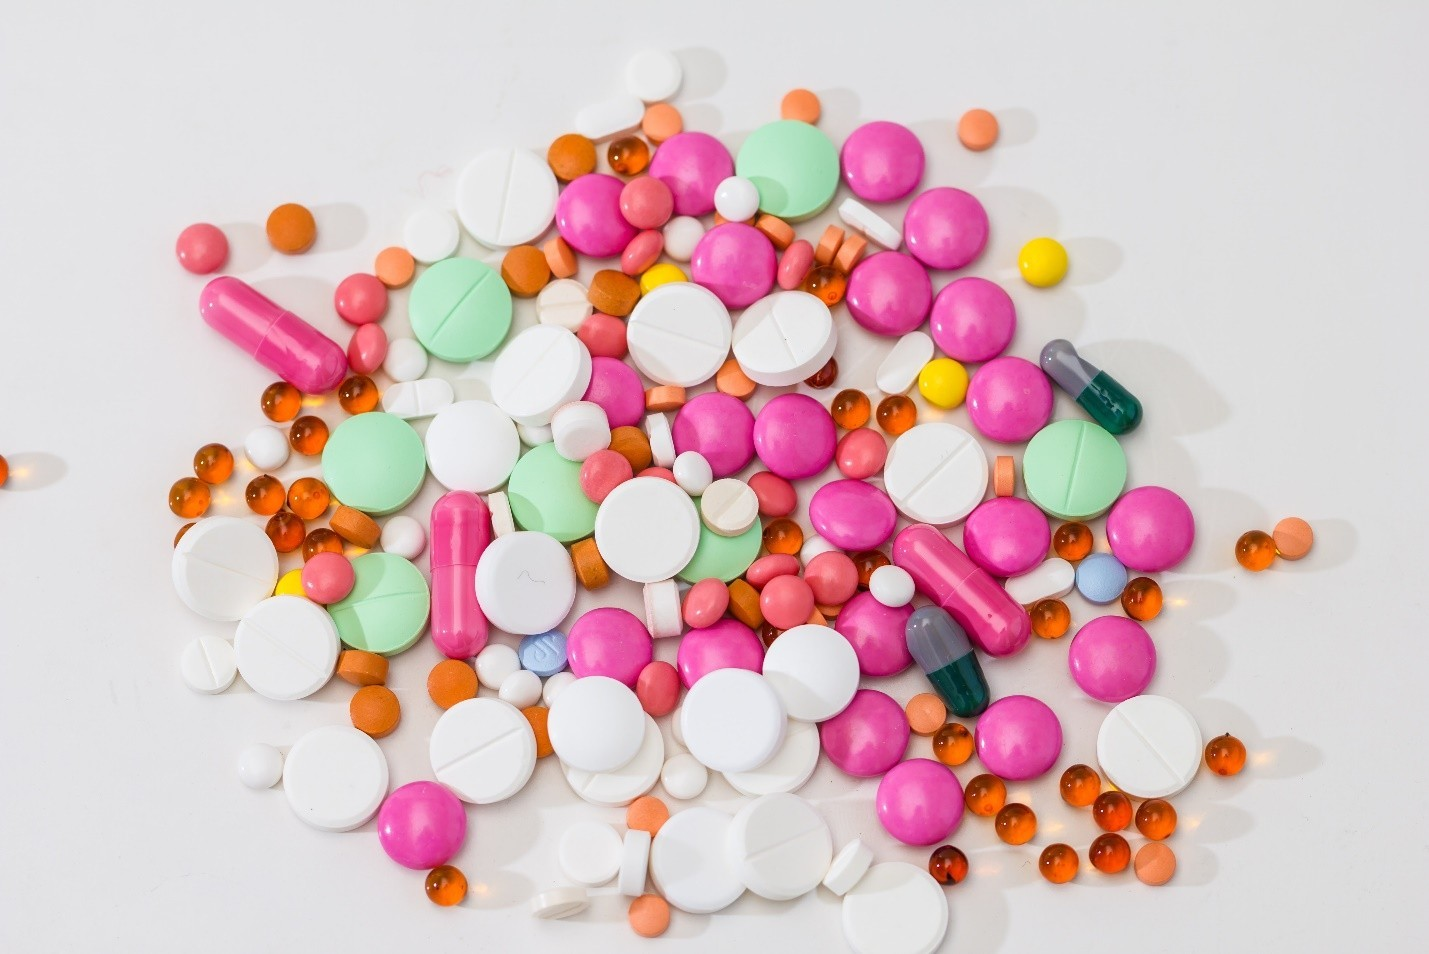 queens tainted drug lawyers - New York Prescription Drug Injury Lawyer